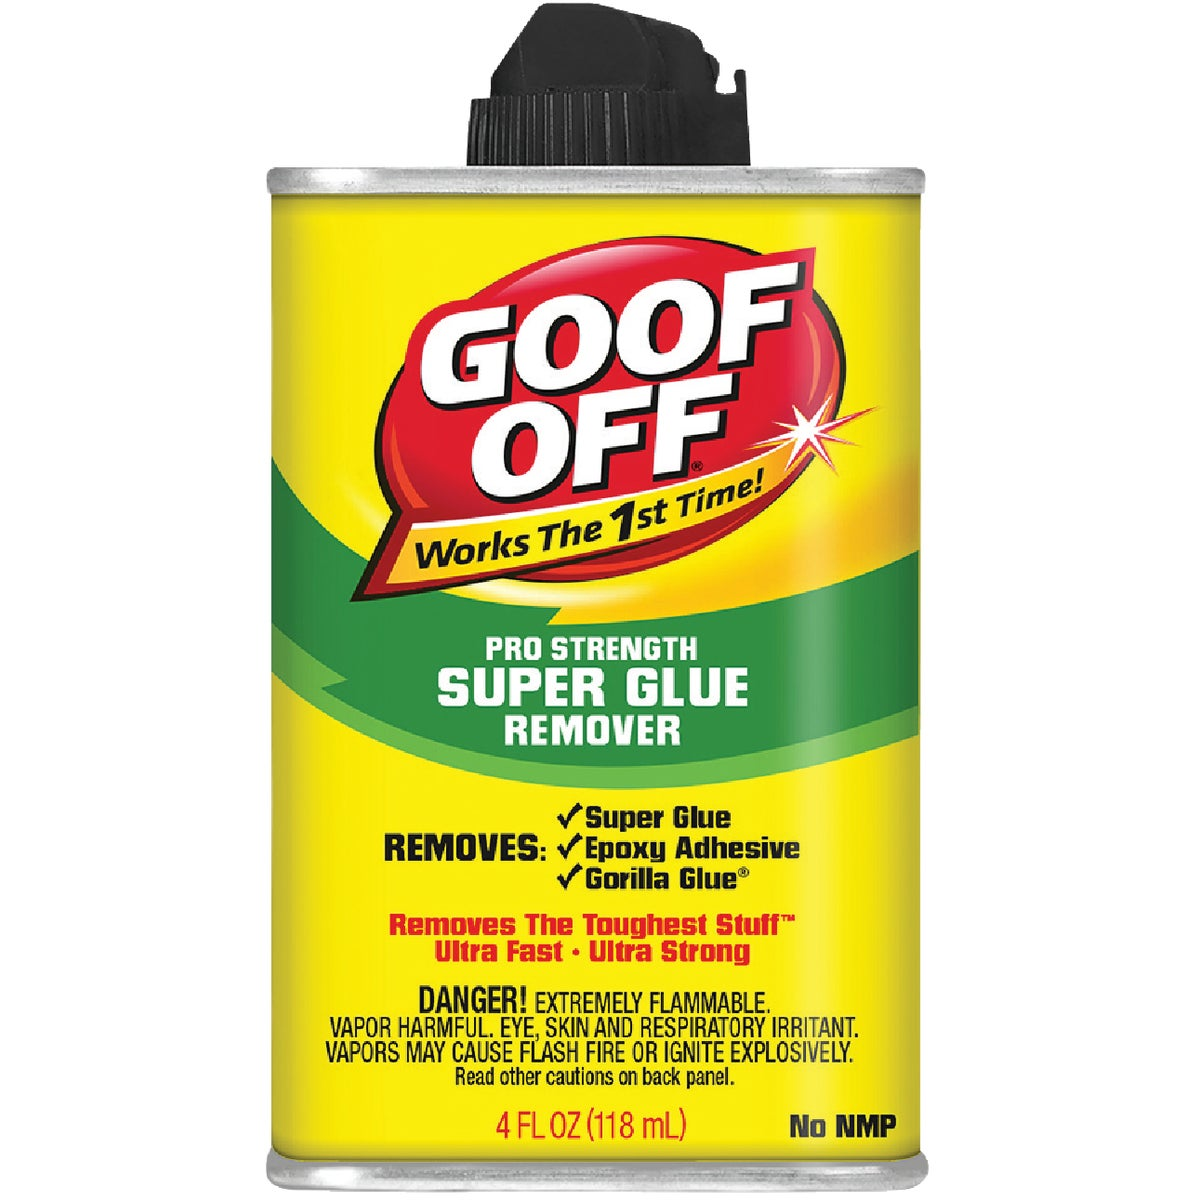 4OZ SUPER GLUE REMOVER - FG677 by Wm Barr